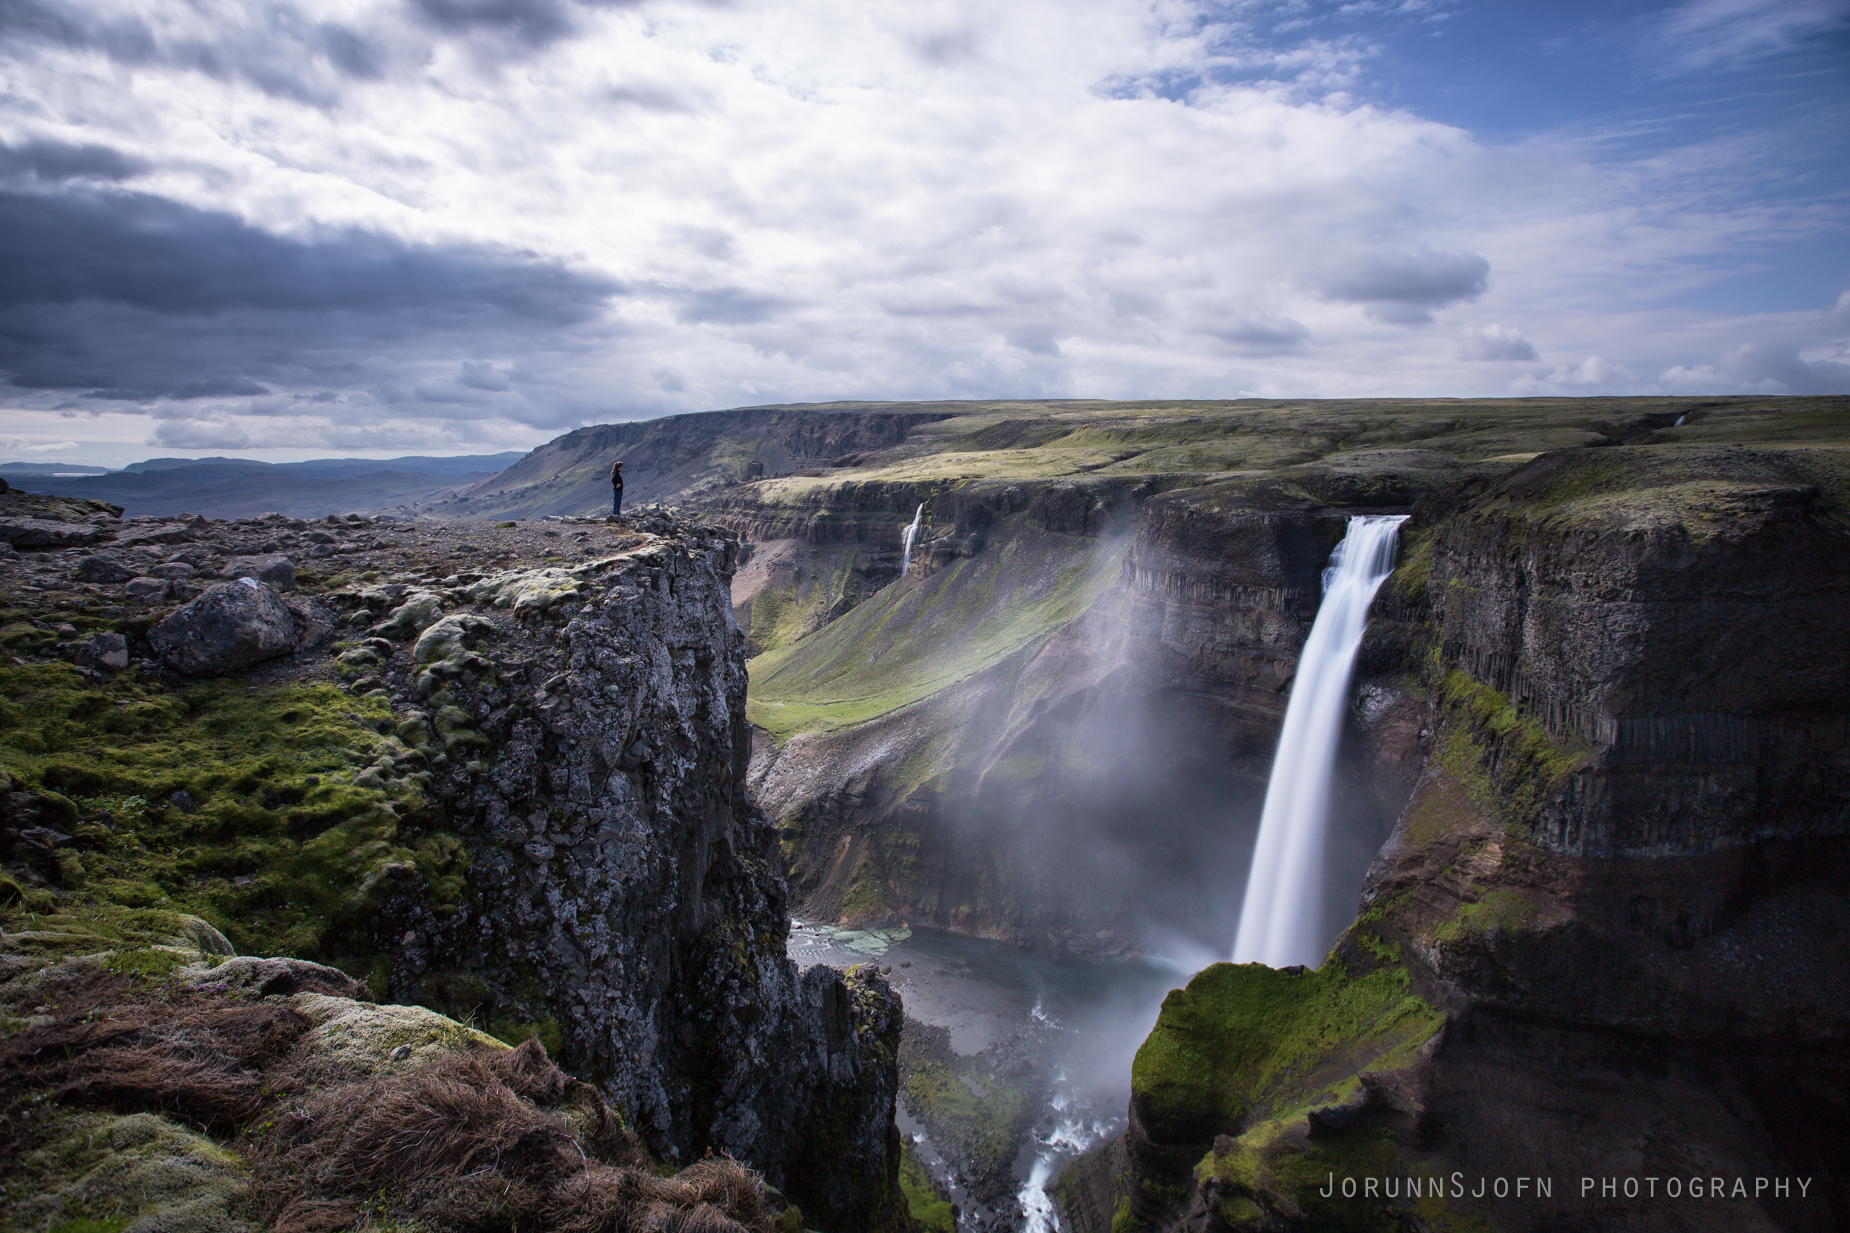 Why Do We Fall Wallpaper Chasing Waterfalls In Iceland Guide To Iceland